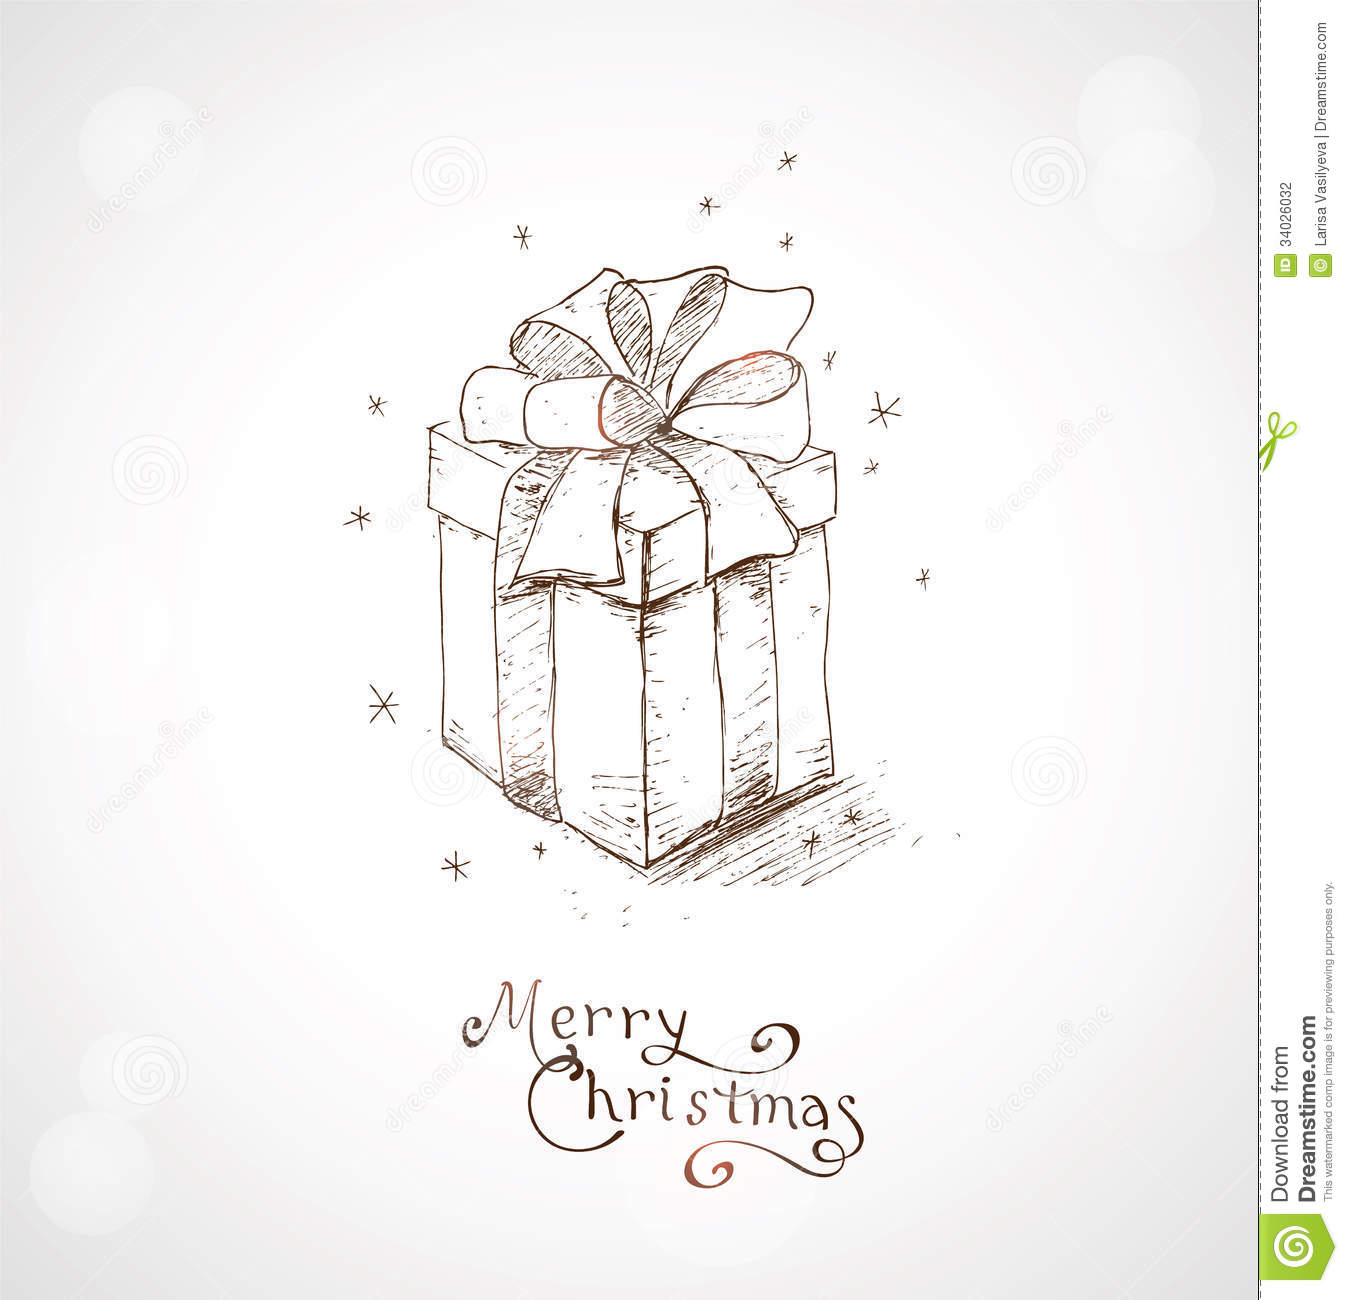 Christmas Greeting Card 4 Stock Photography - Image: 34026032